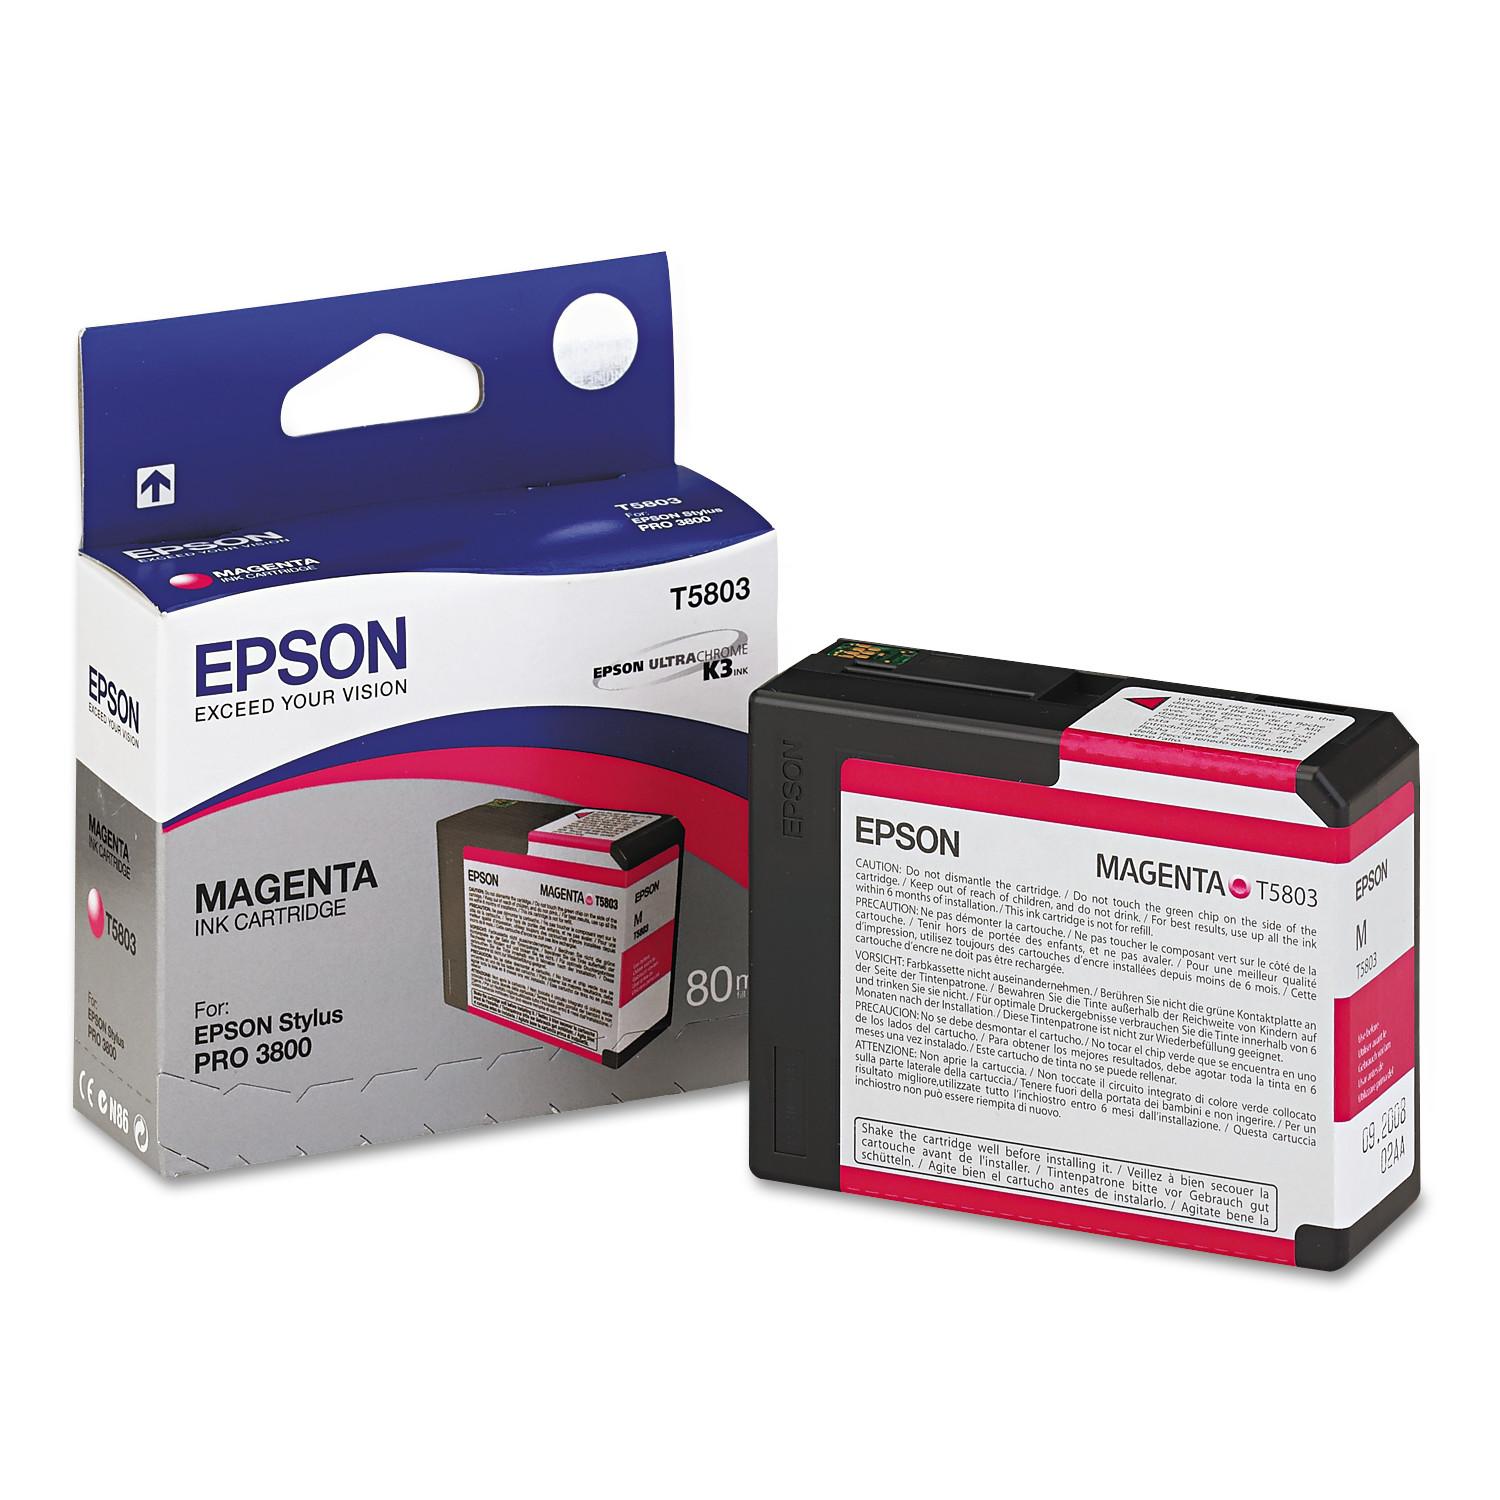 Epson T580300 UltraChrome K3 Ink, Magenta by Epson